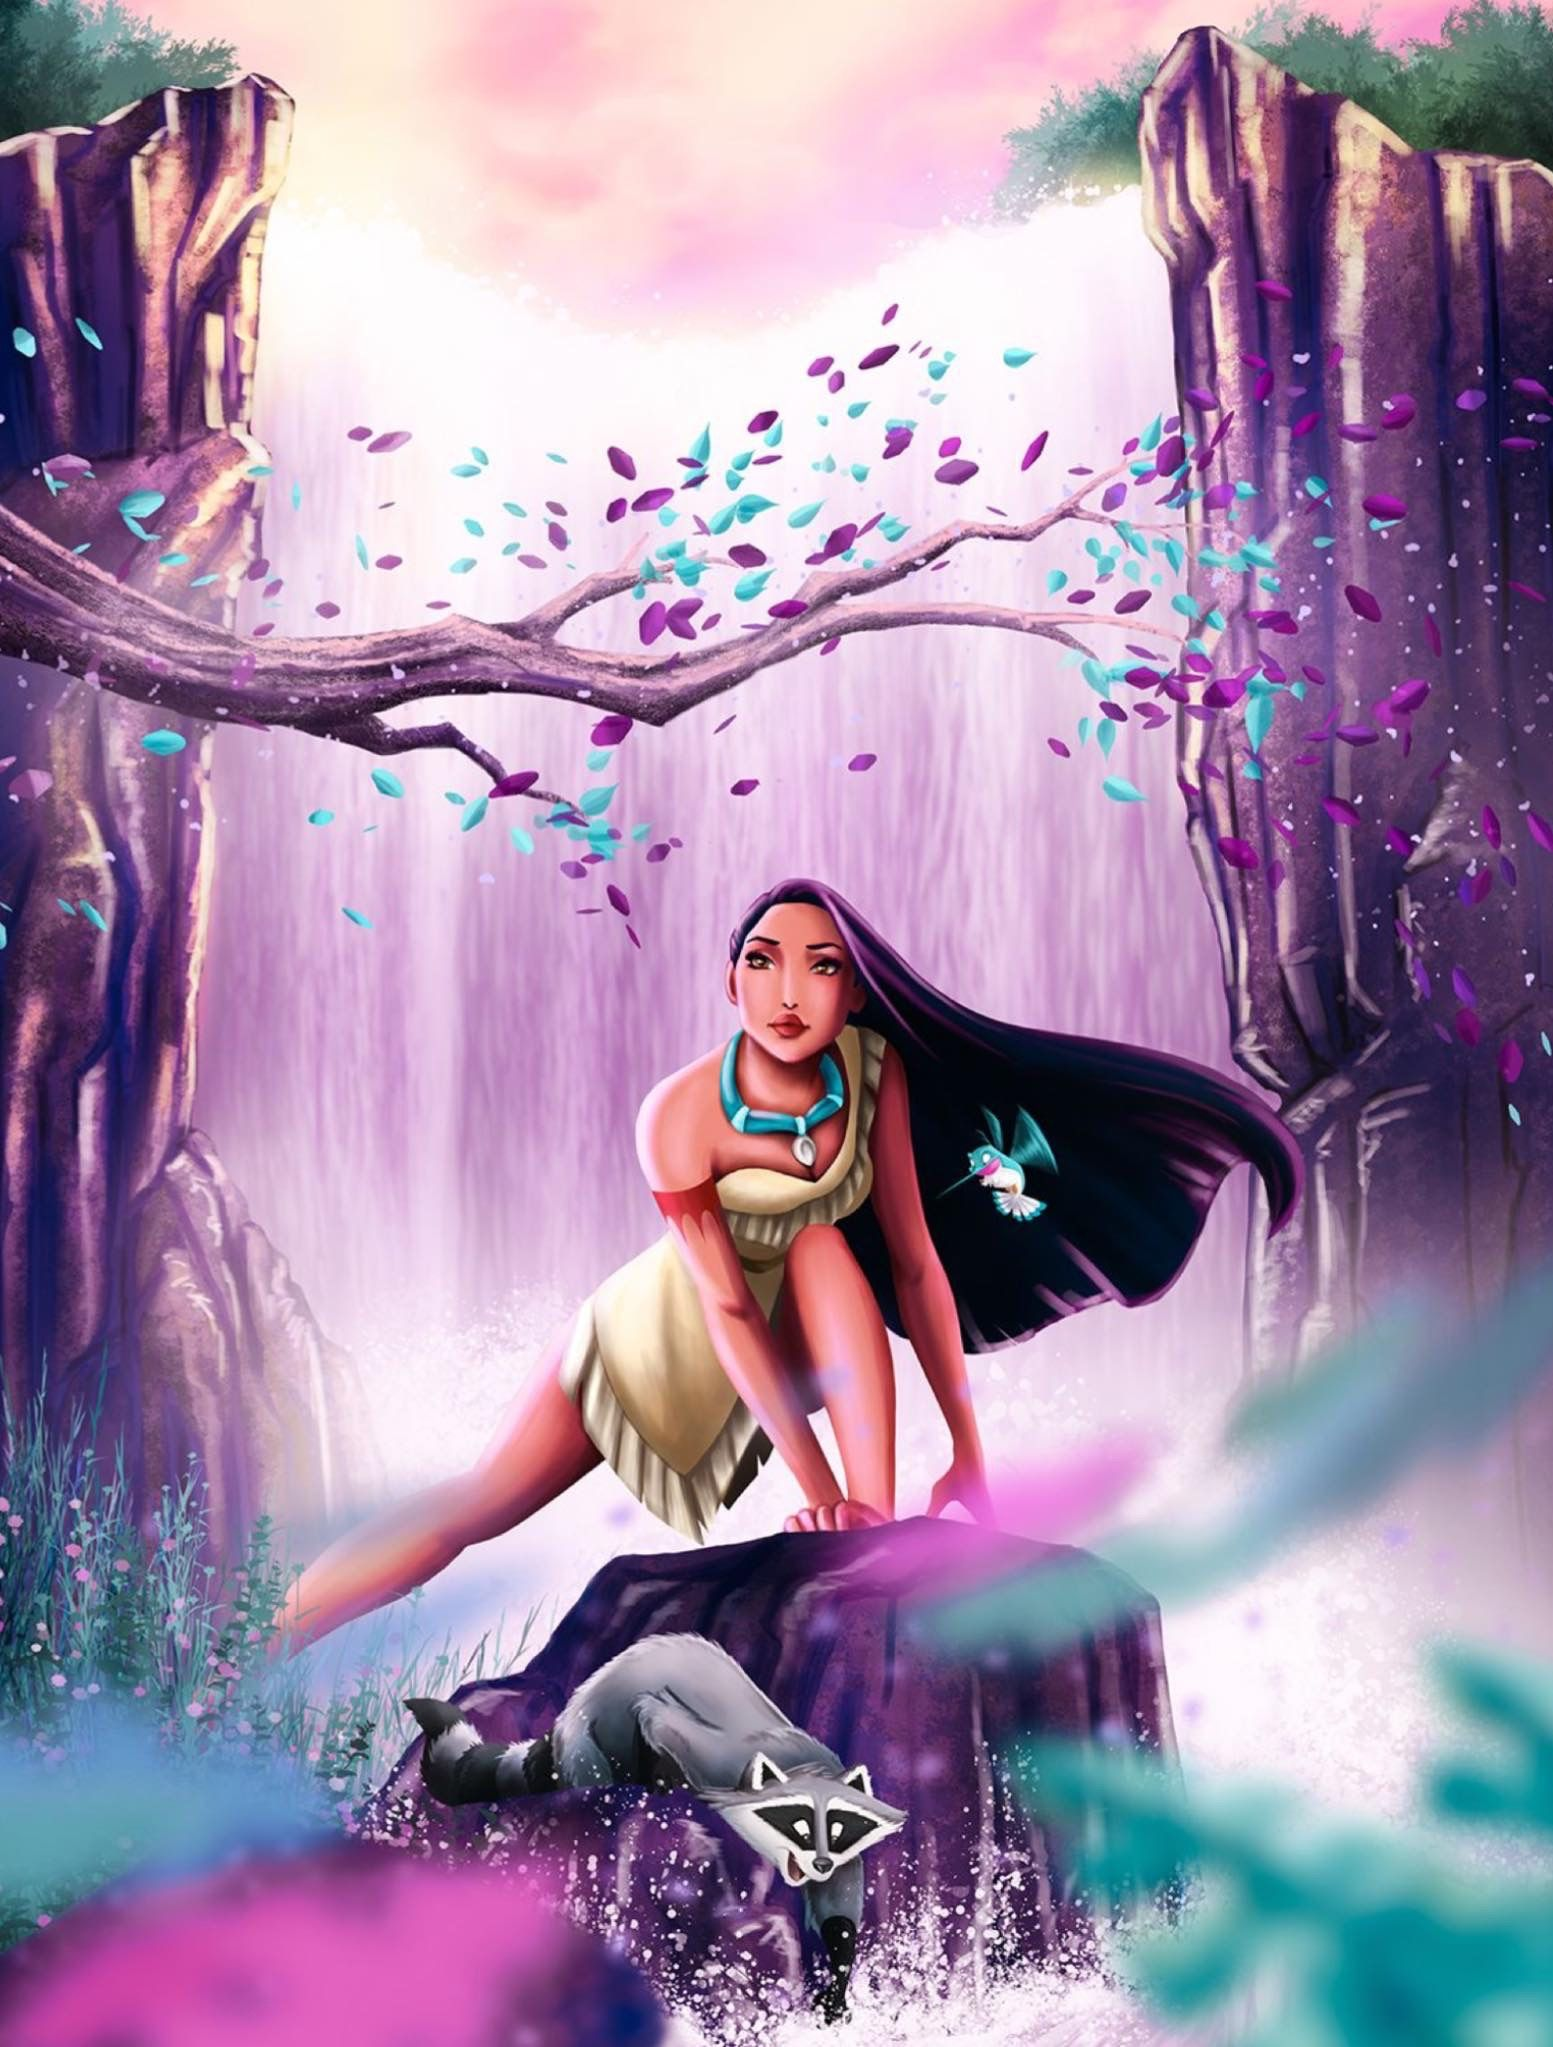 Pin by Maddie and Marry on Disney Art/Wallpapers | Disney ...